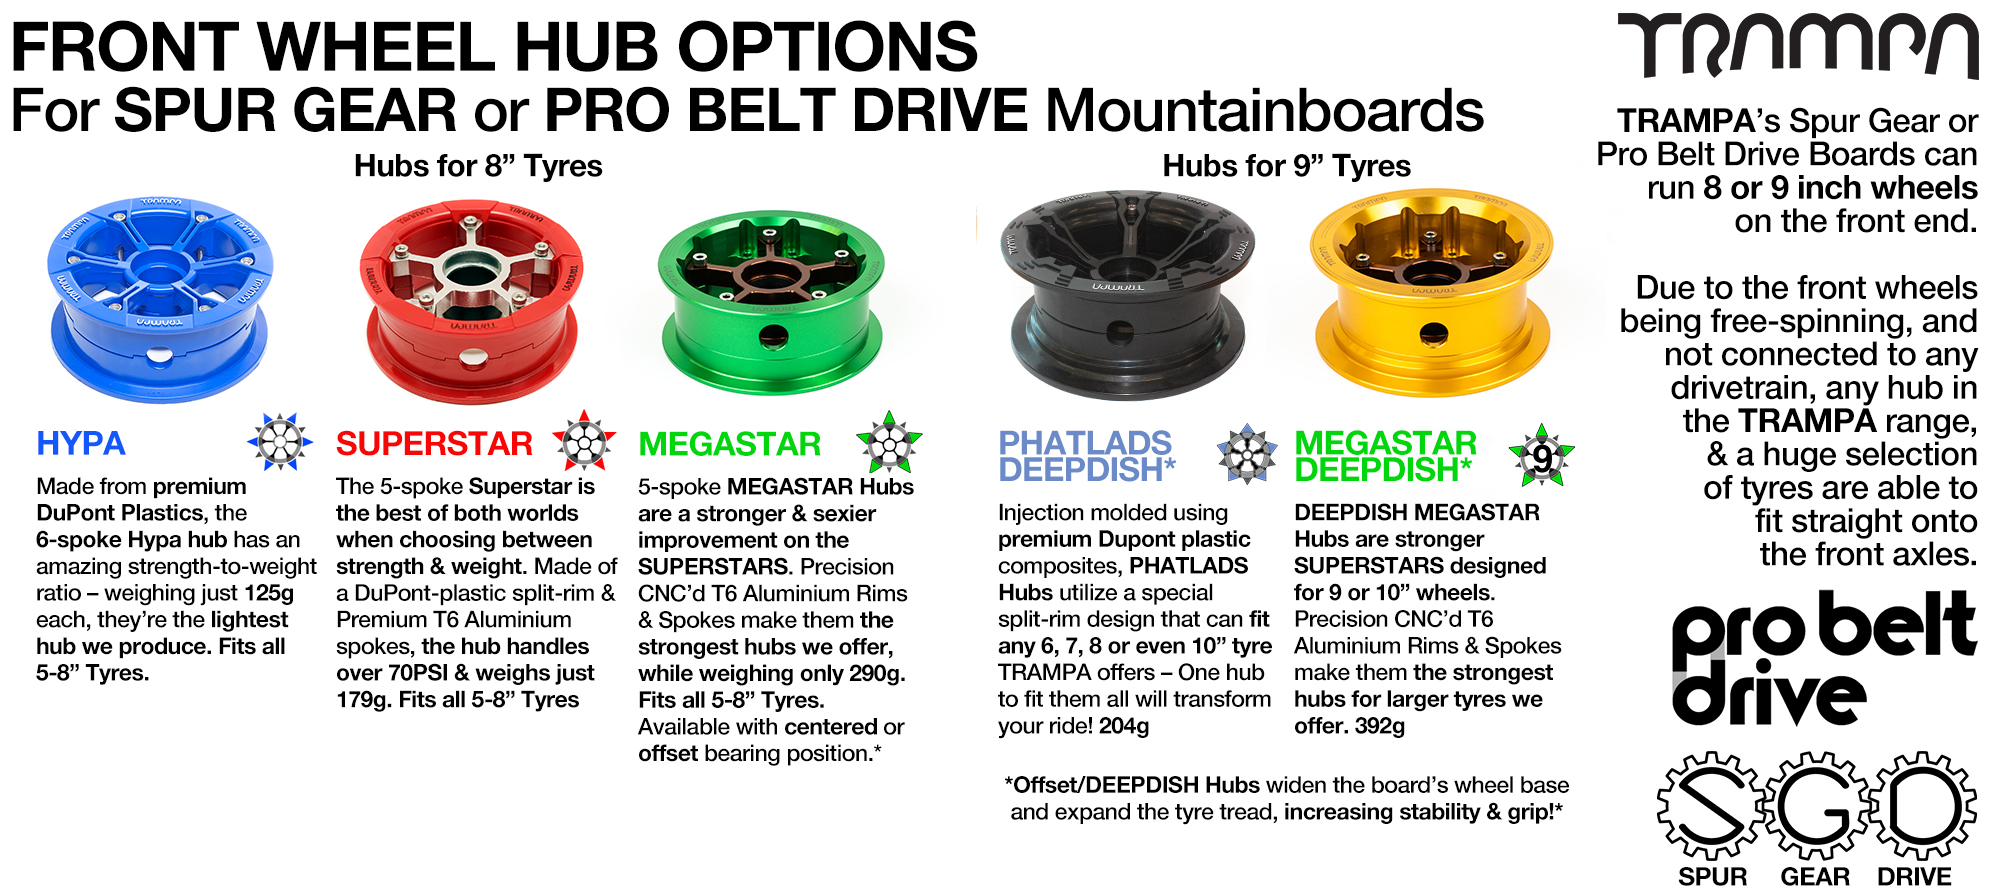 FRONT Wheel Hub options for SPUR GEAR & PRO BELT Boards